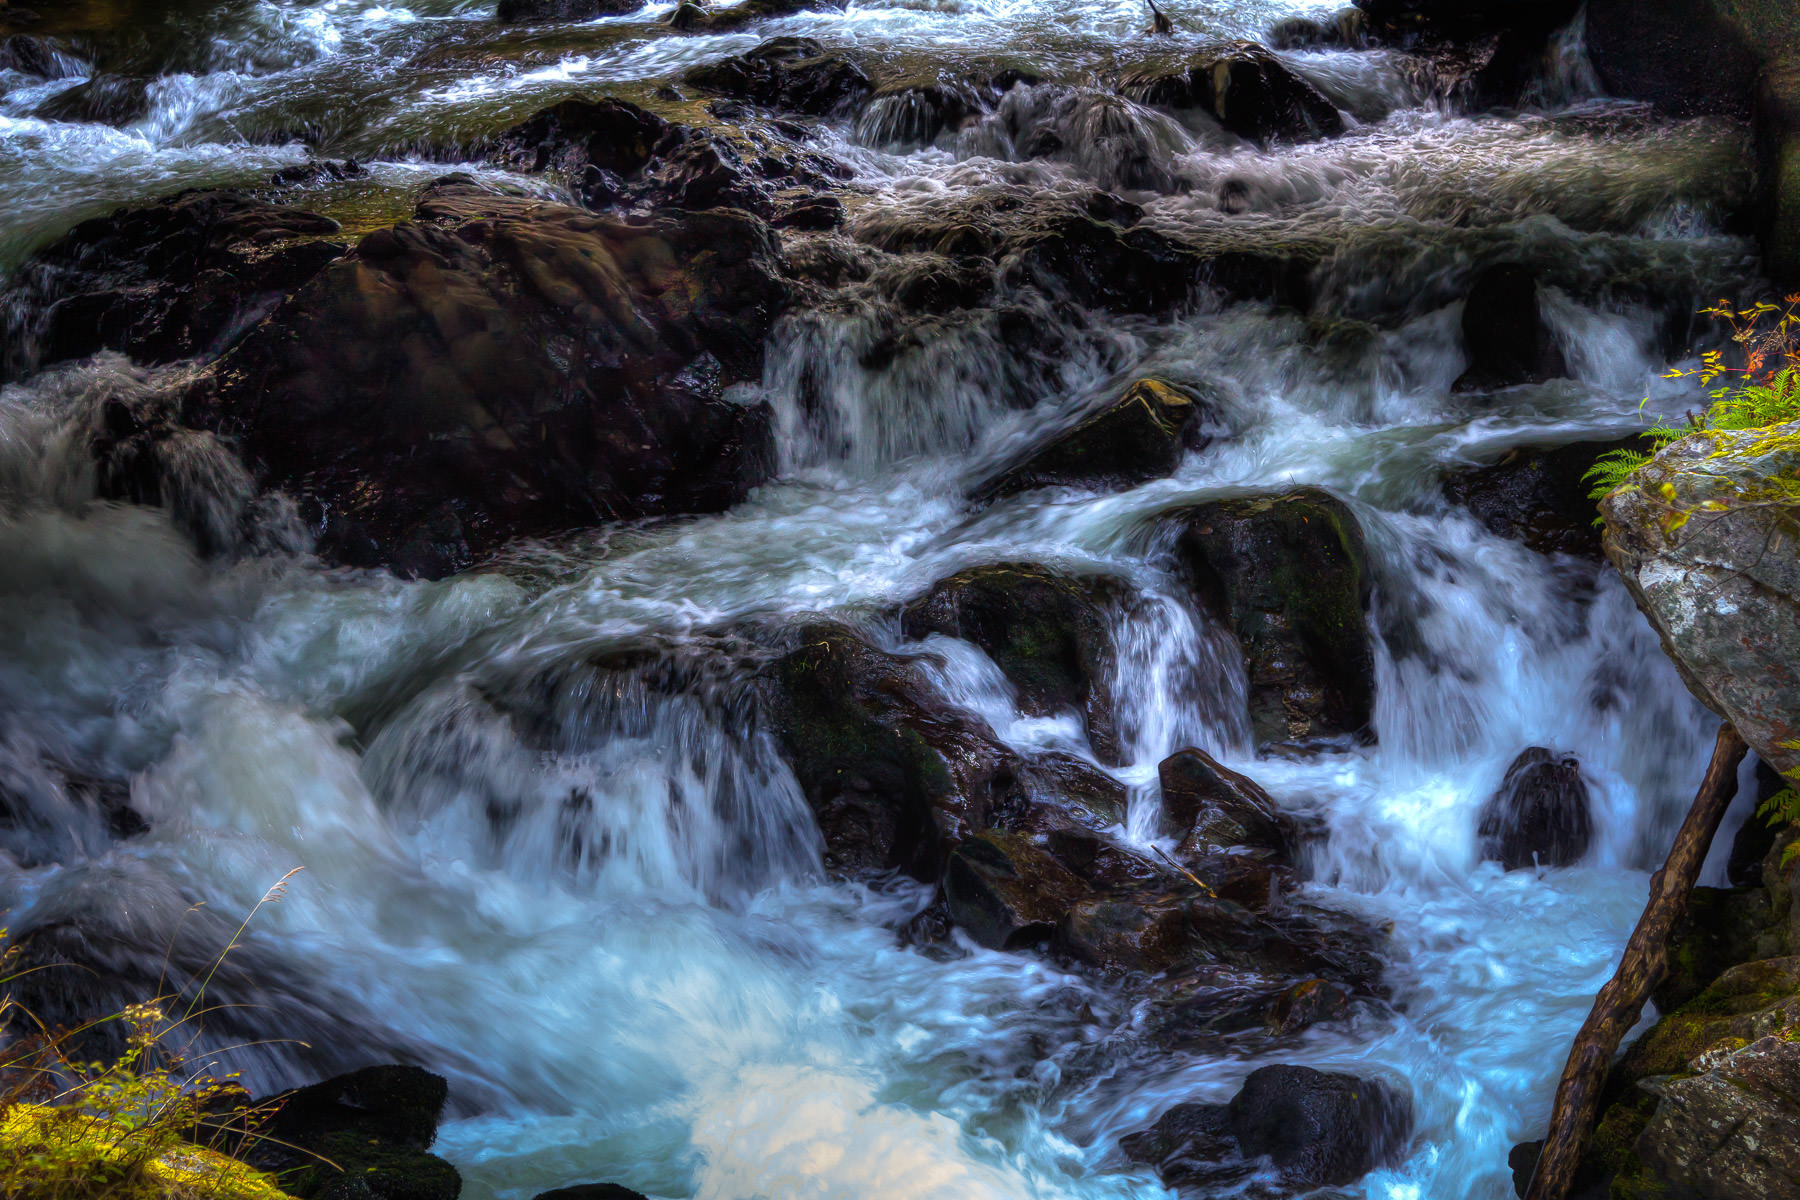 Water flows through a rock-strewn brook in Ketchikan, Alaska.